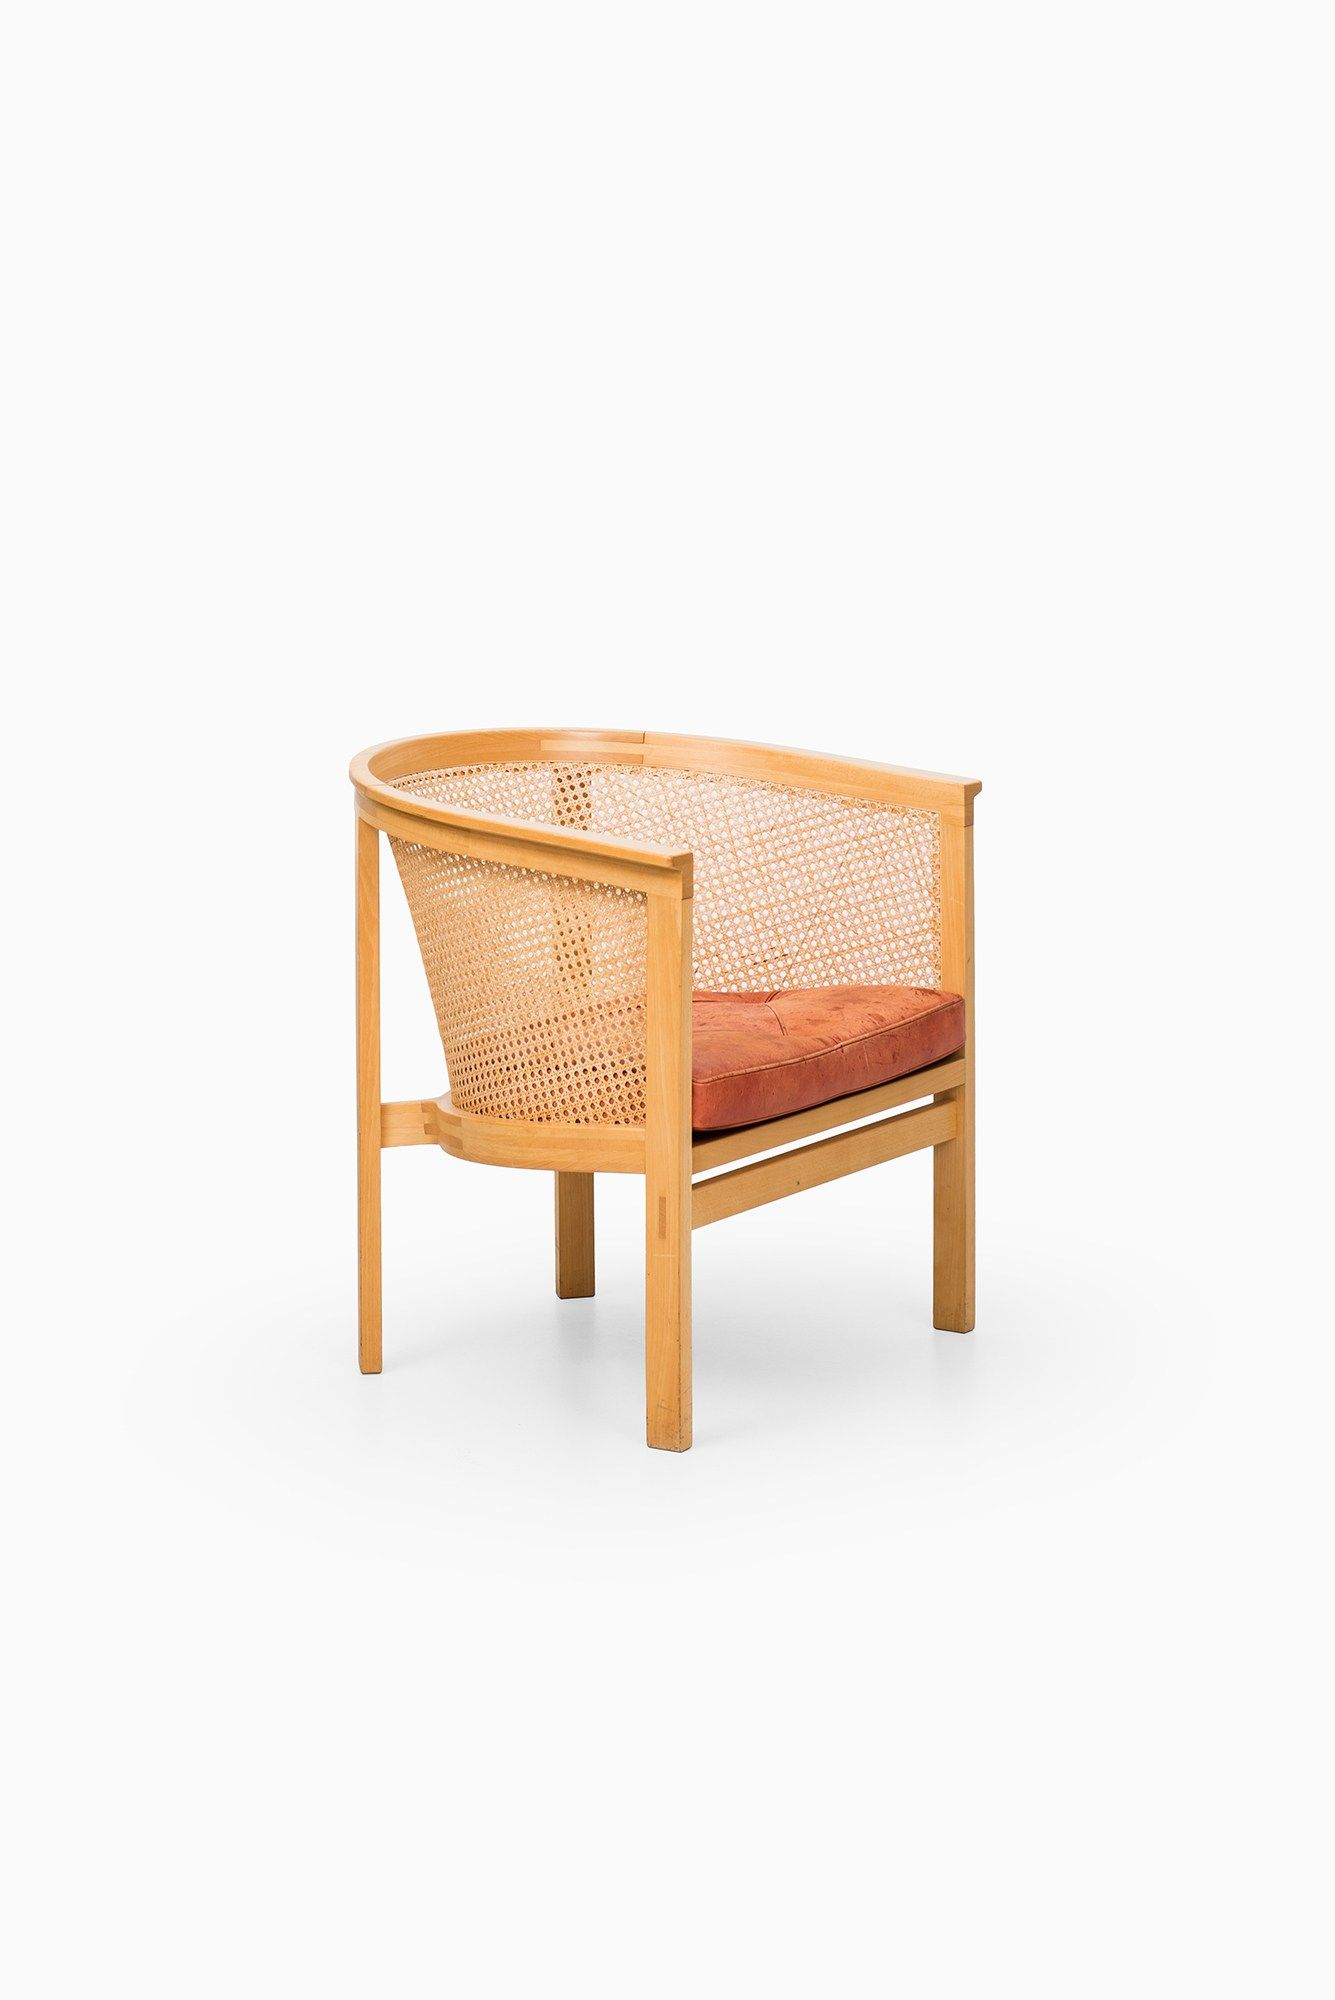 Rud Thygesen Johnny Sorensen Easy Chair With Images Studio Chairs Chair Easy Chair